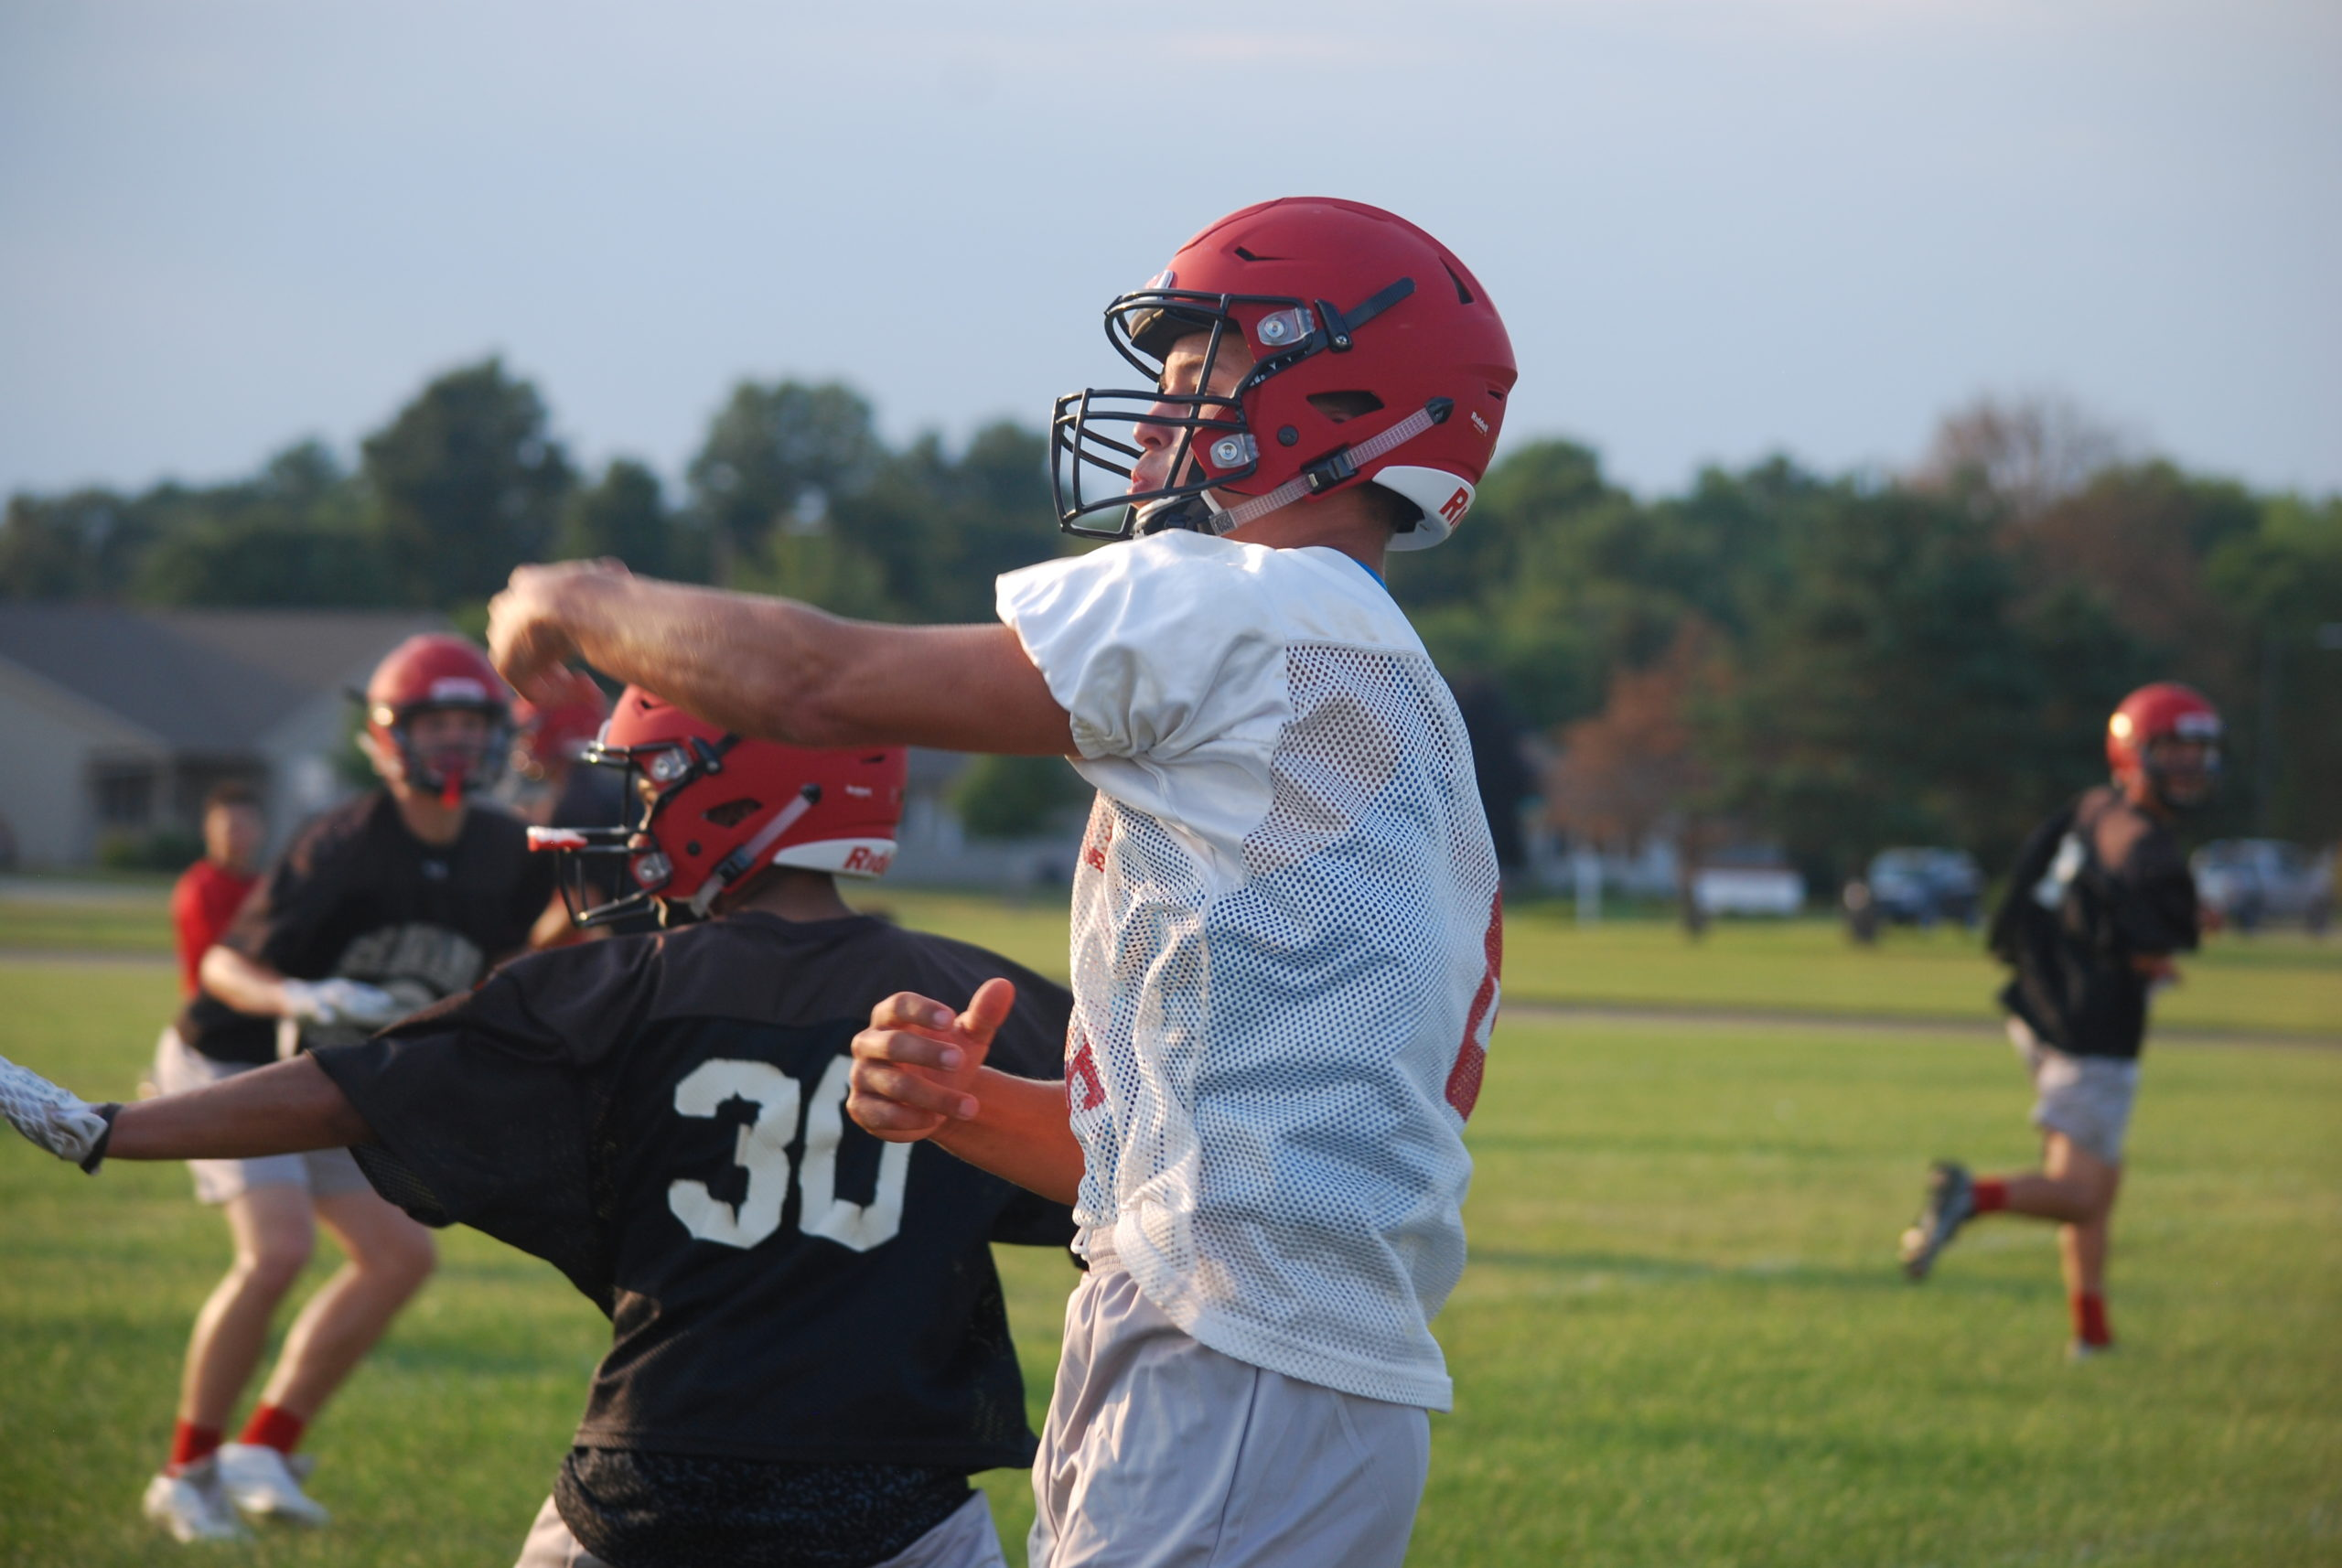 Shawano QB Throws First Touchdowns Of Season, Leads Shawano To Homecoming Win